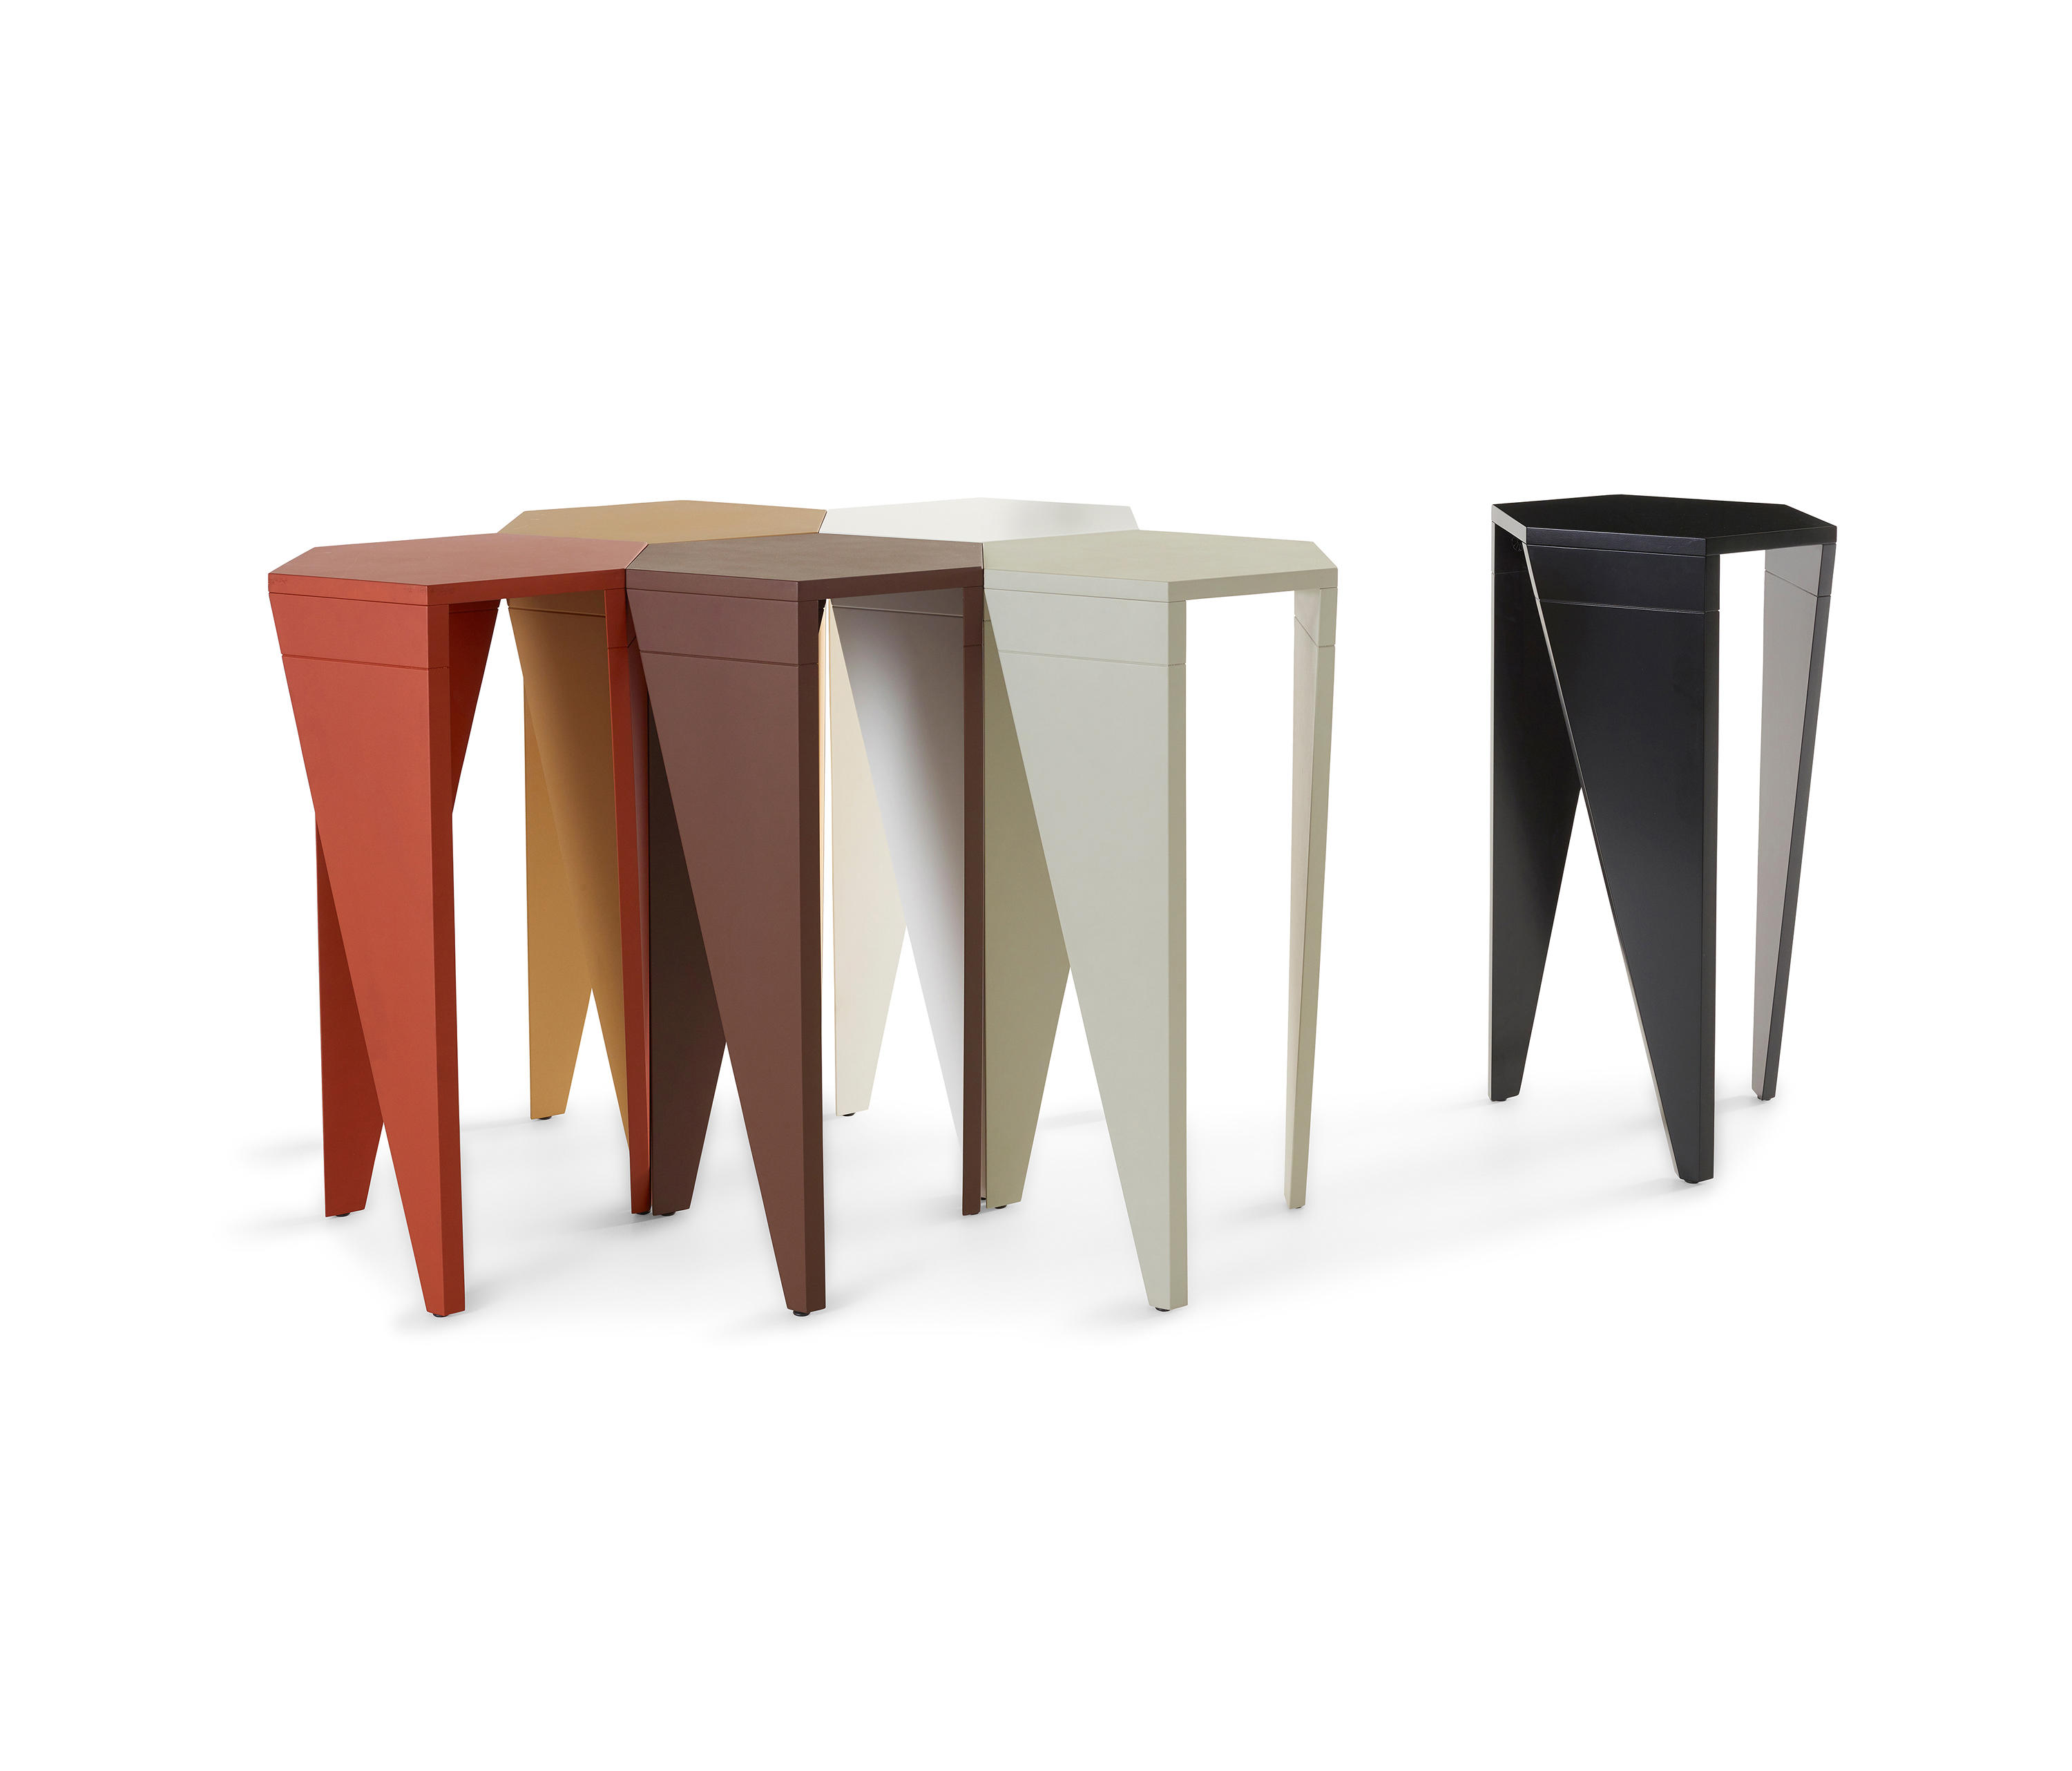 TRIGON HOT DESK - Standing tables from Lande   Architonic